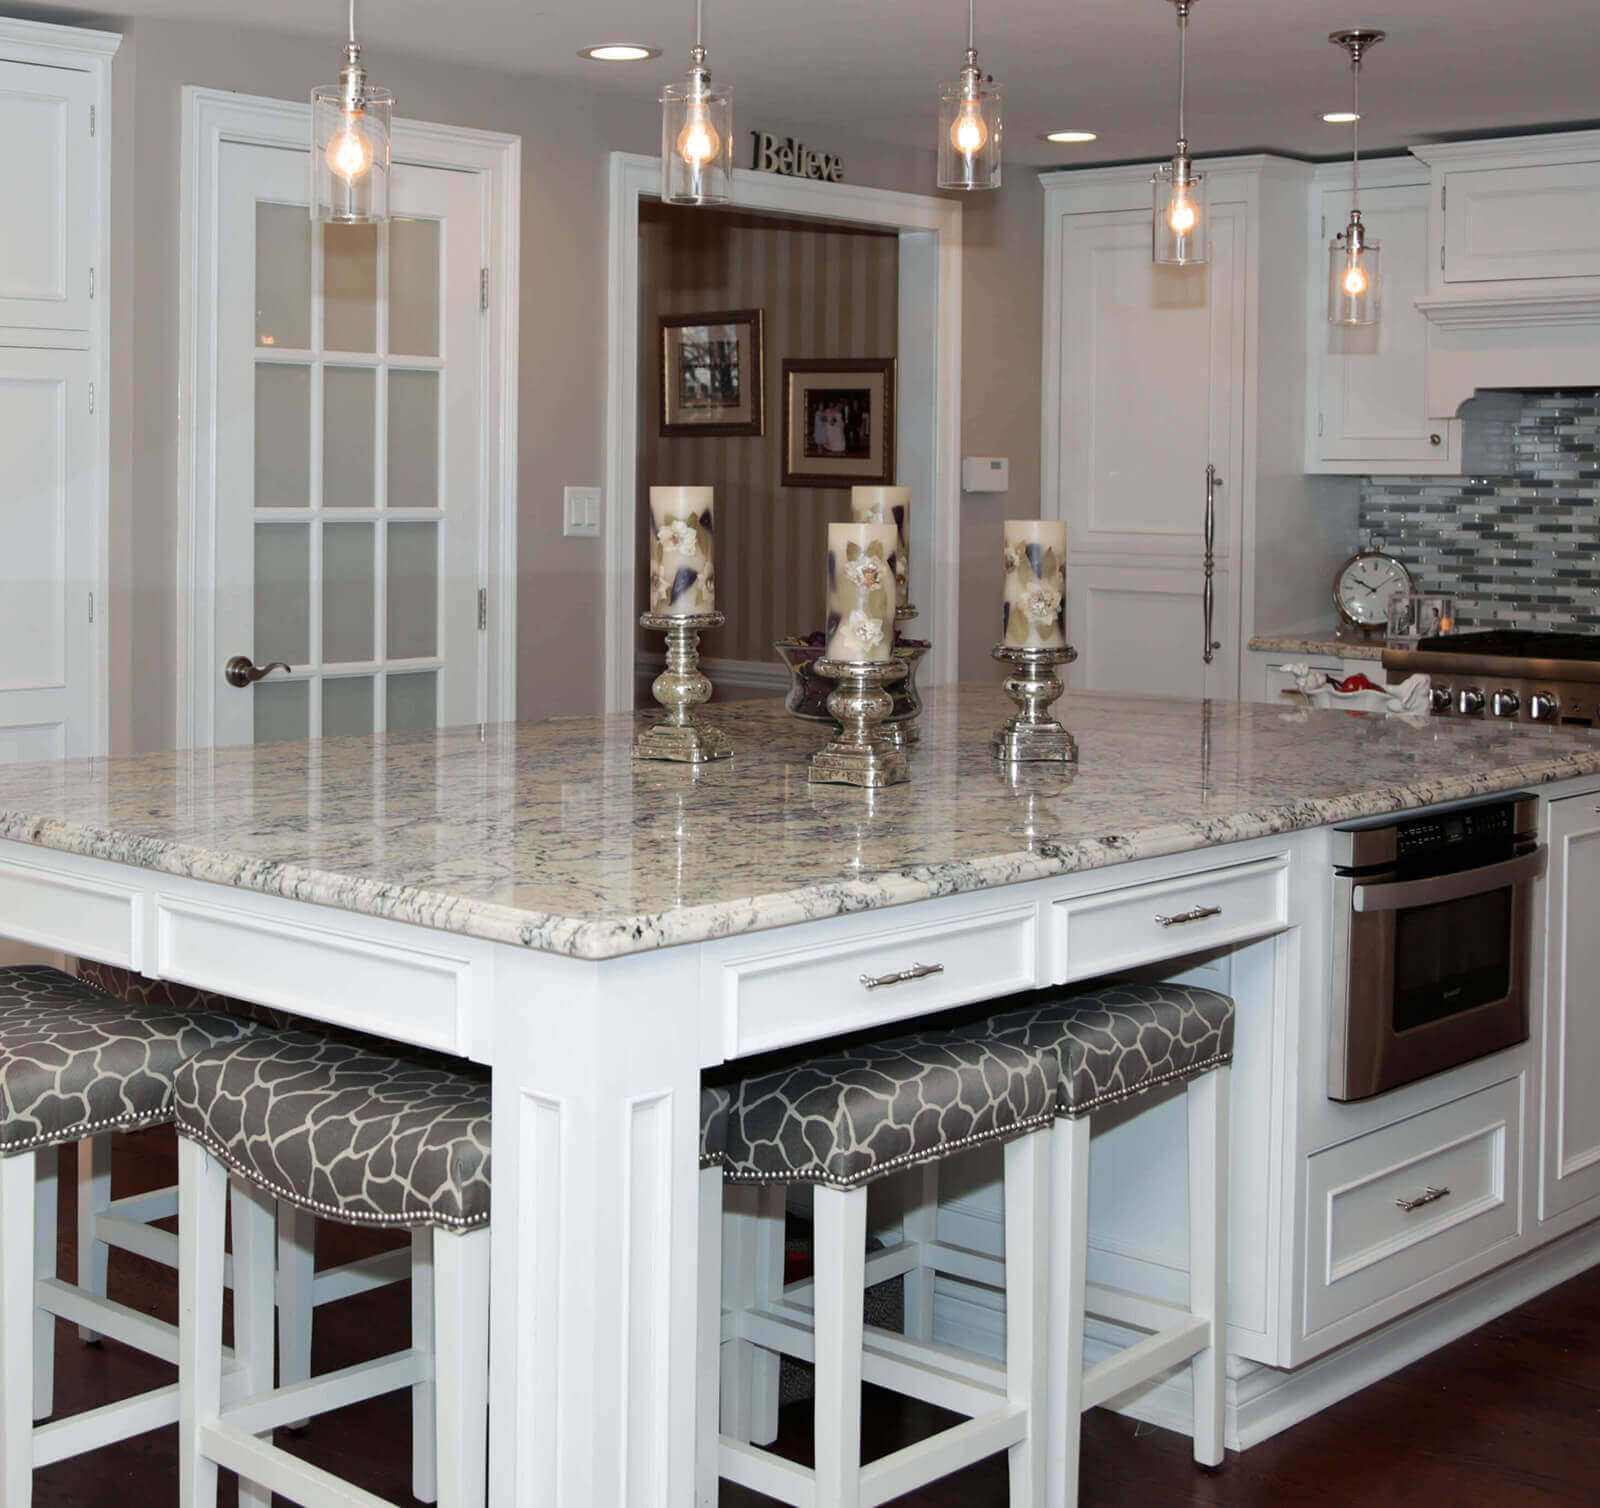 One stop kitchen and bath - At Thornberry S We Take Care Of All Your Needs One Stop Shopping For Complete Kitchen Bathroom Remodeling From Basic Styles To Fully Custom Additions